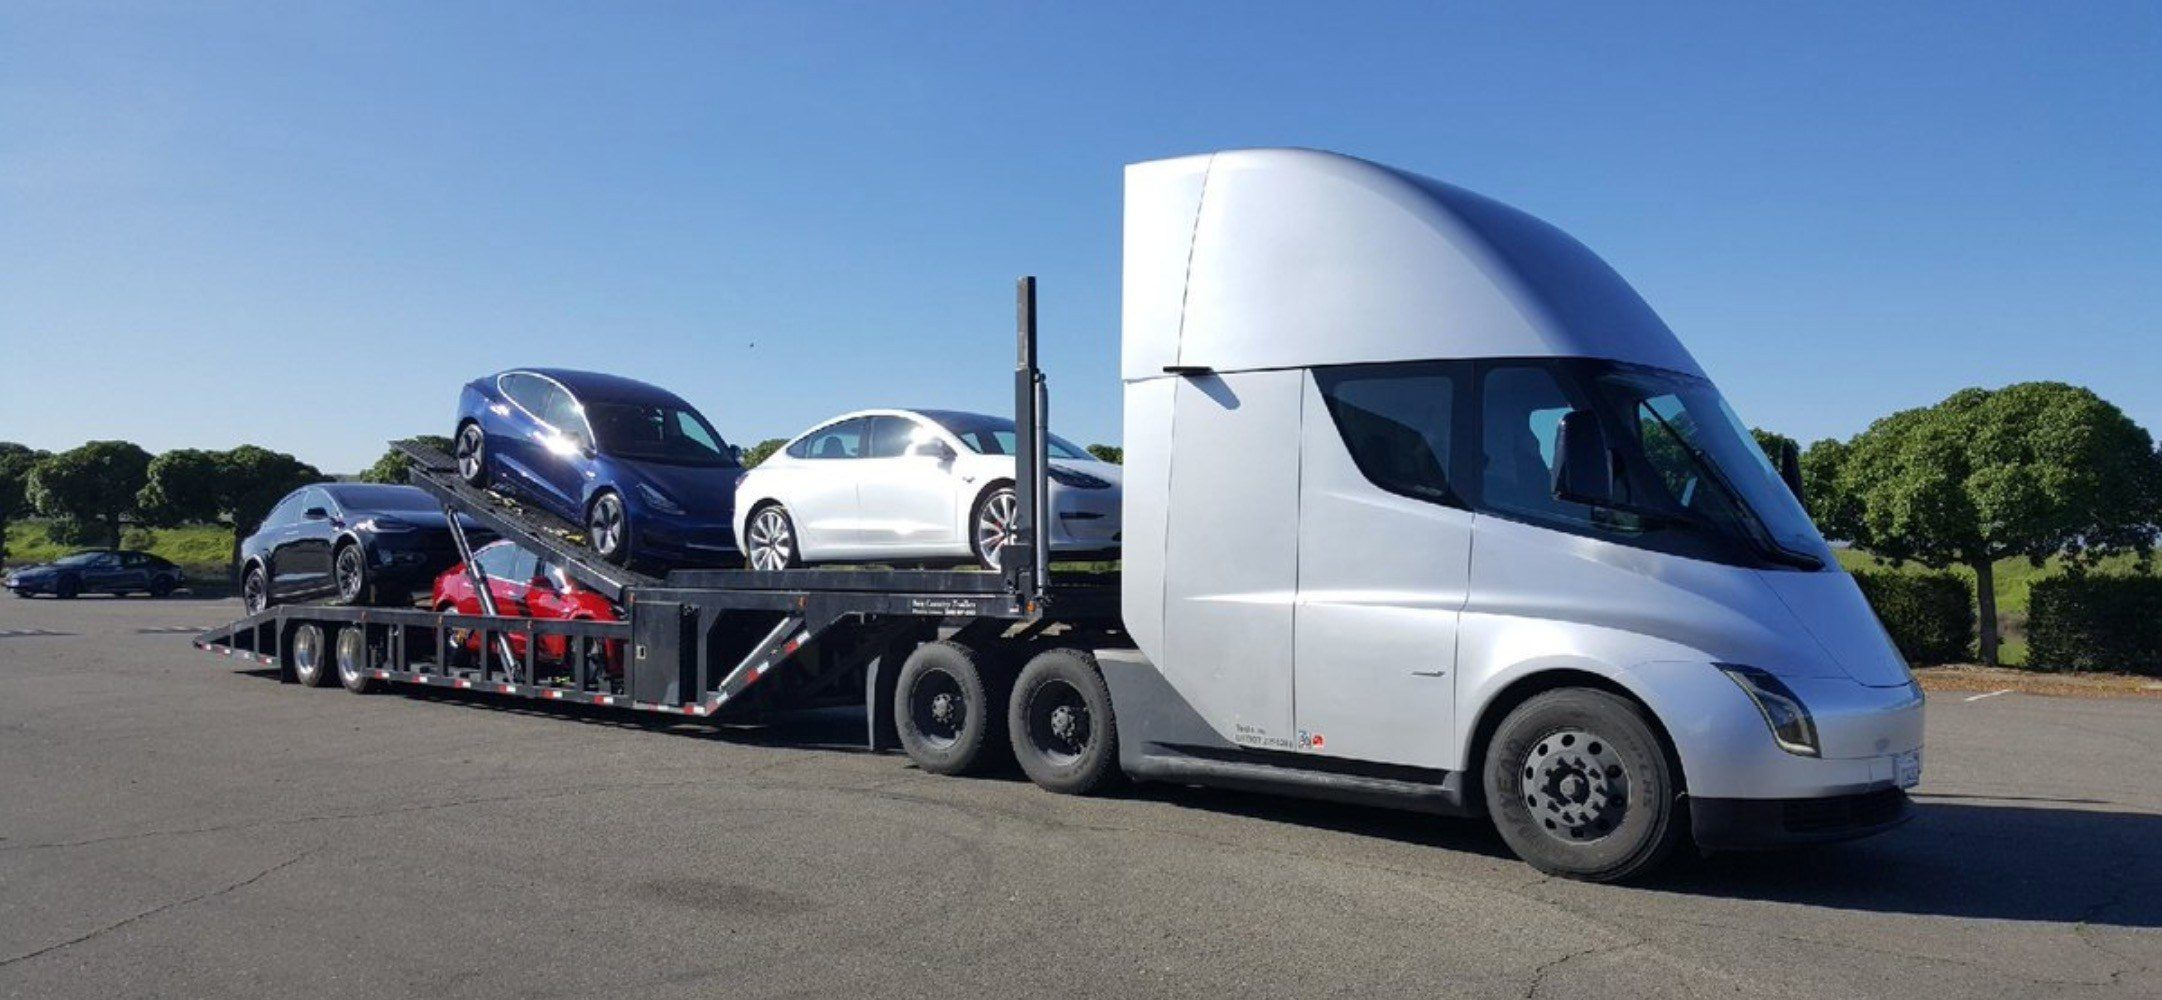 Tesla uses semi electric truck to deliver electric cars - the sustainable  future in one picture - Electrek | Electric truck, Tesla semi truck, Tesla  car